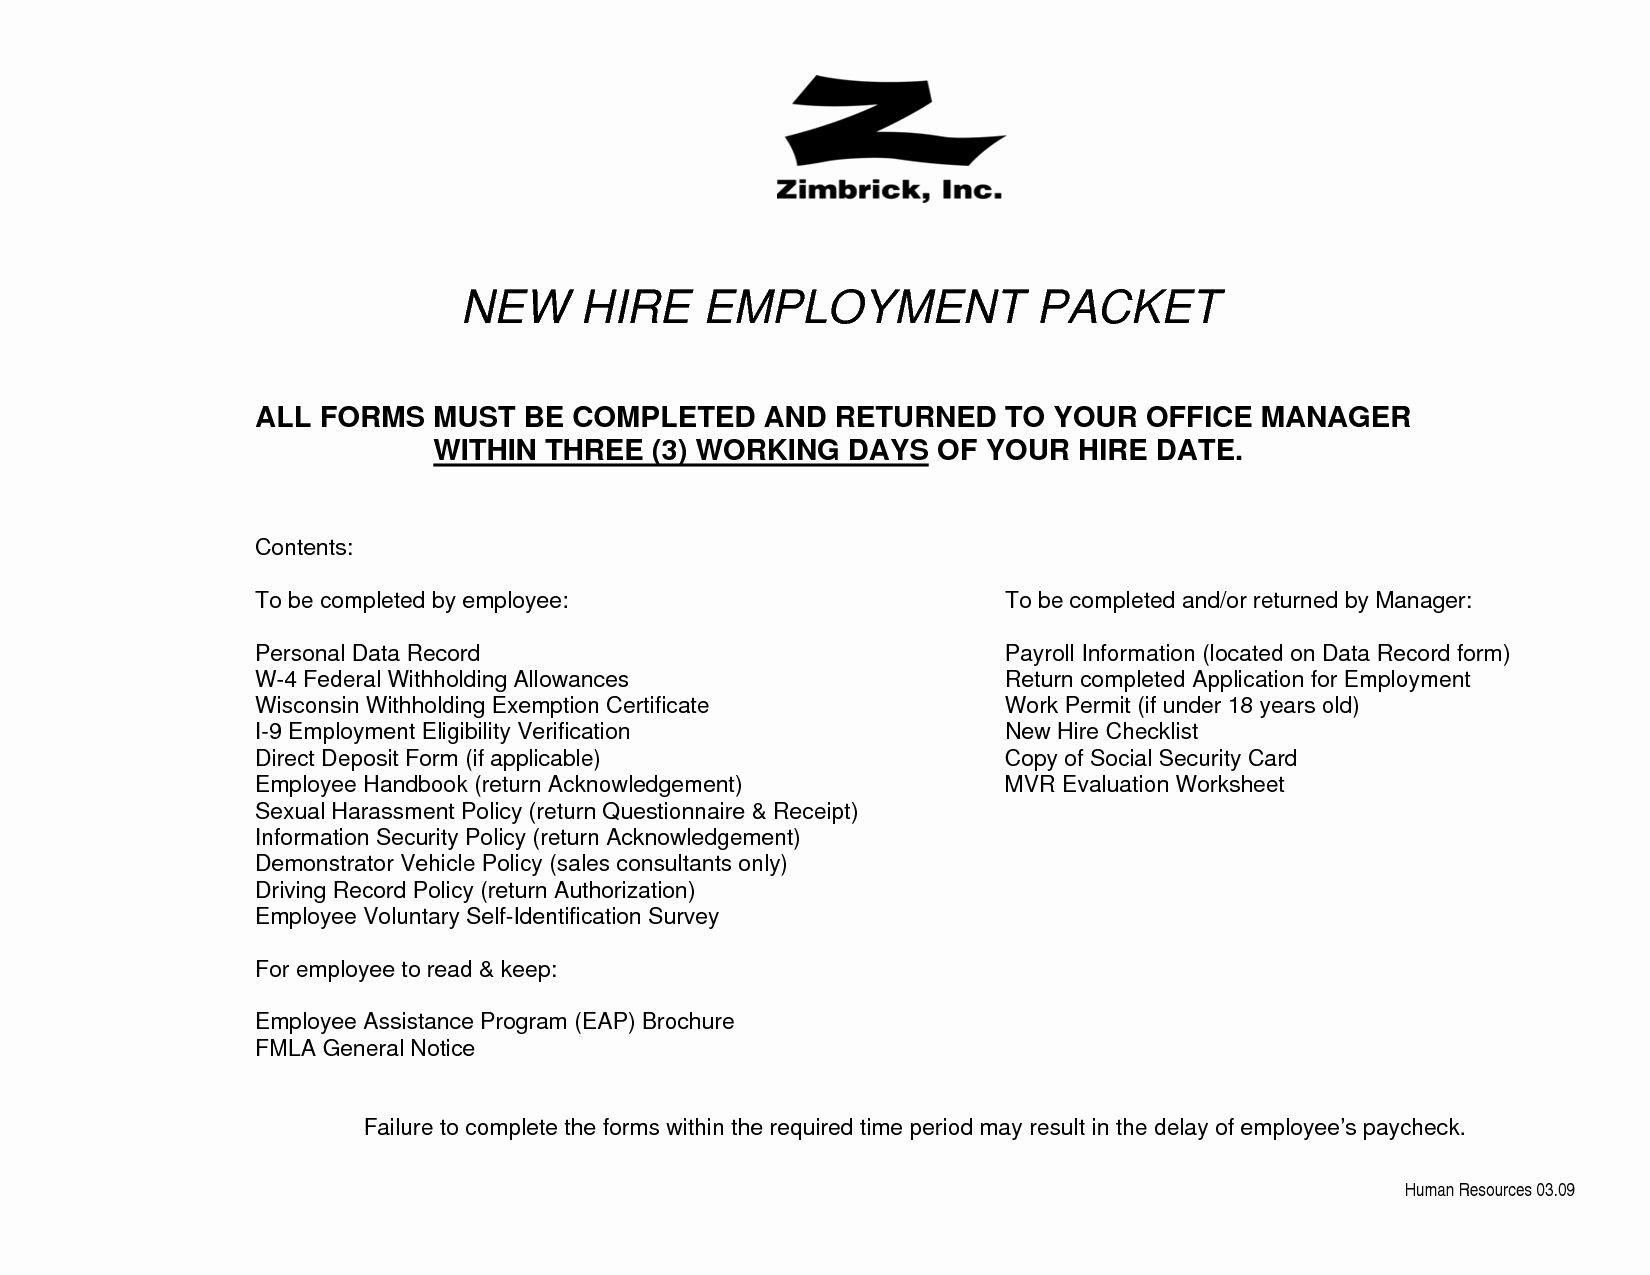 New Employee Welcome Packet Template Awesome New Hire Packet forms Bing Images